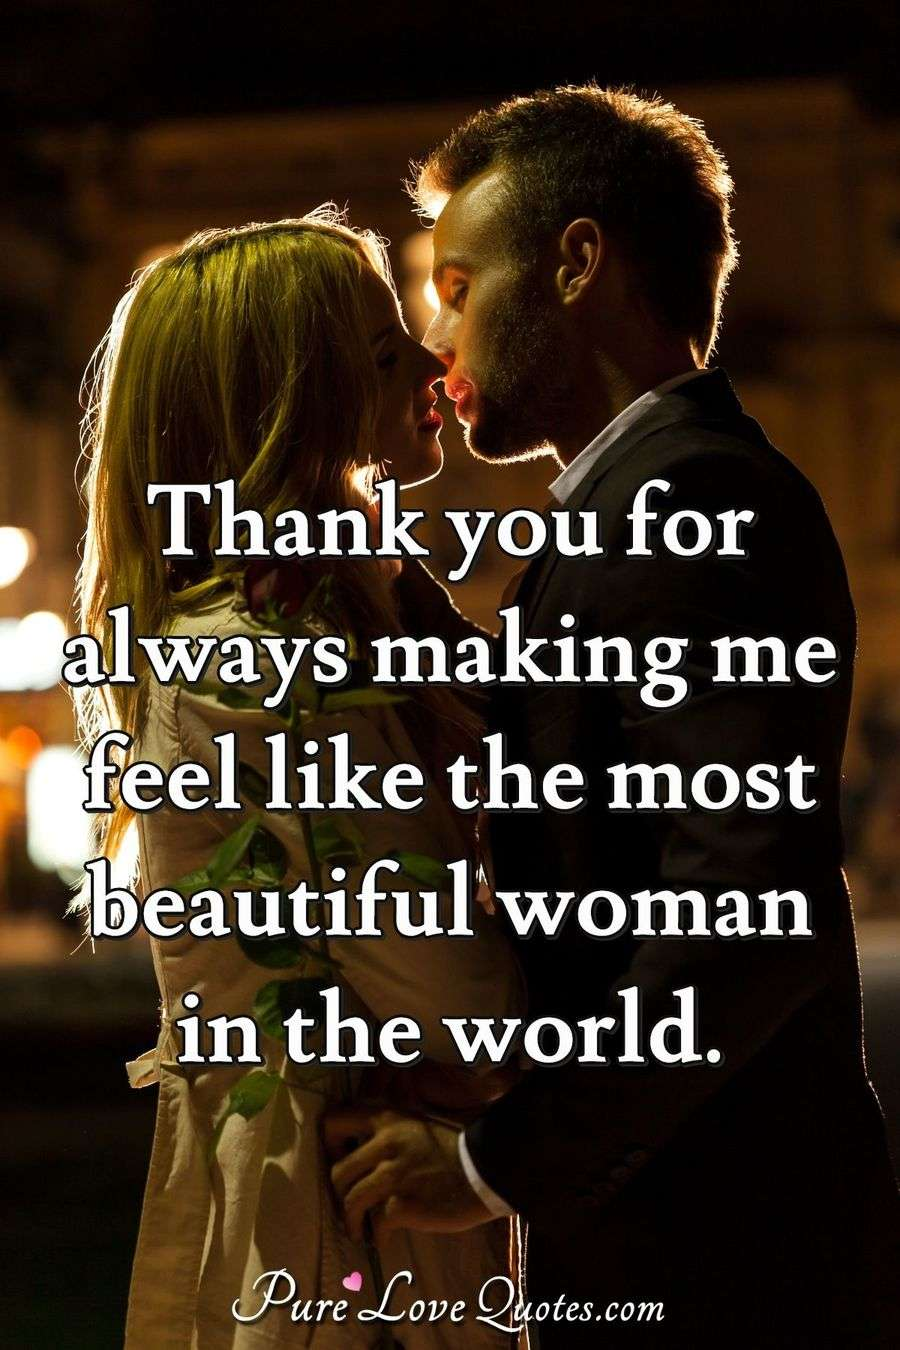 Thank you for always making me feel like the most beautiful woman in the world.